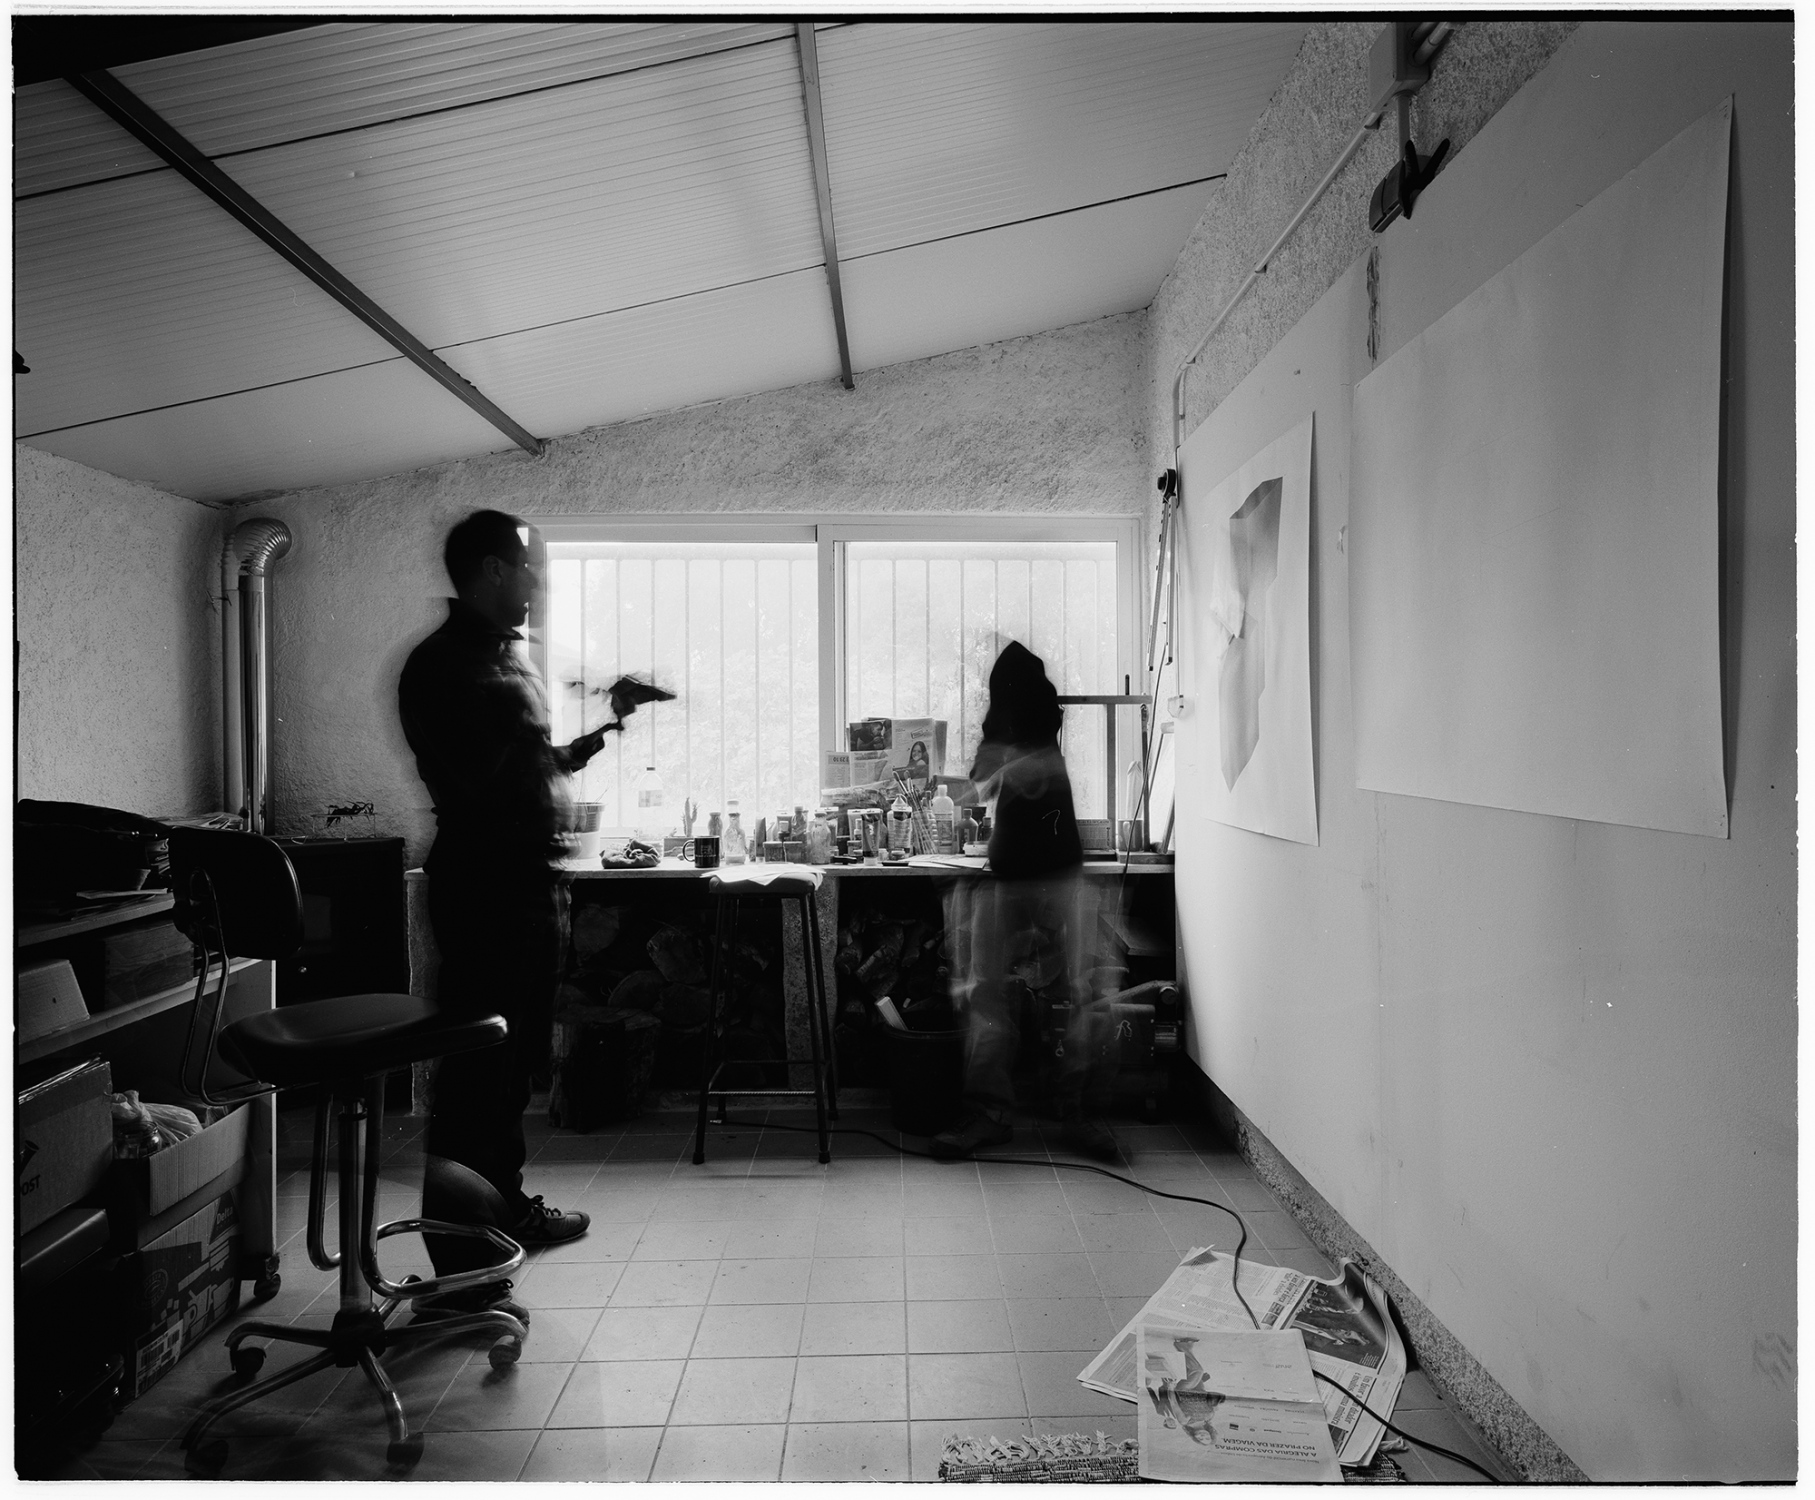 Orlando Franco anb André Banha in the studio, Coruche, Portugal. In 2014. This image was made with black and white  film and Mamyia 7II camera, in 6x7 format. This numbered copied was processed in Ilford FB glossy paper, 50x60cm.